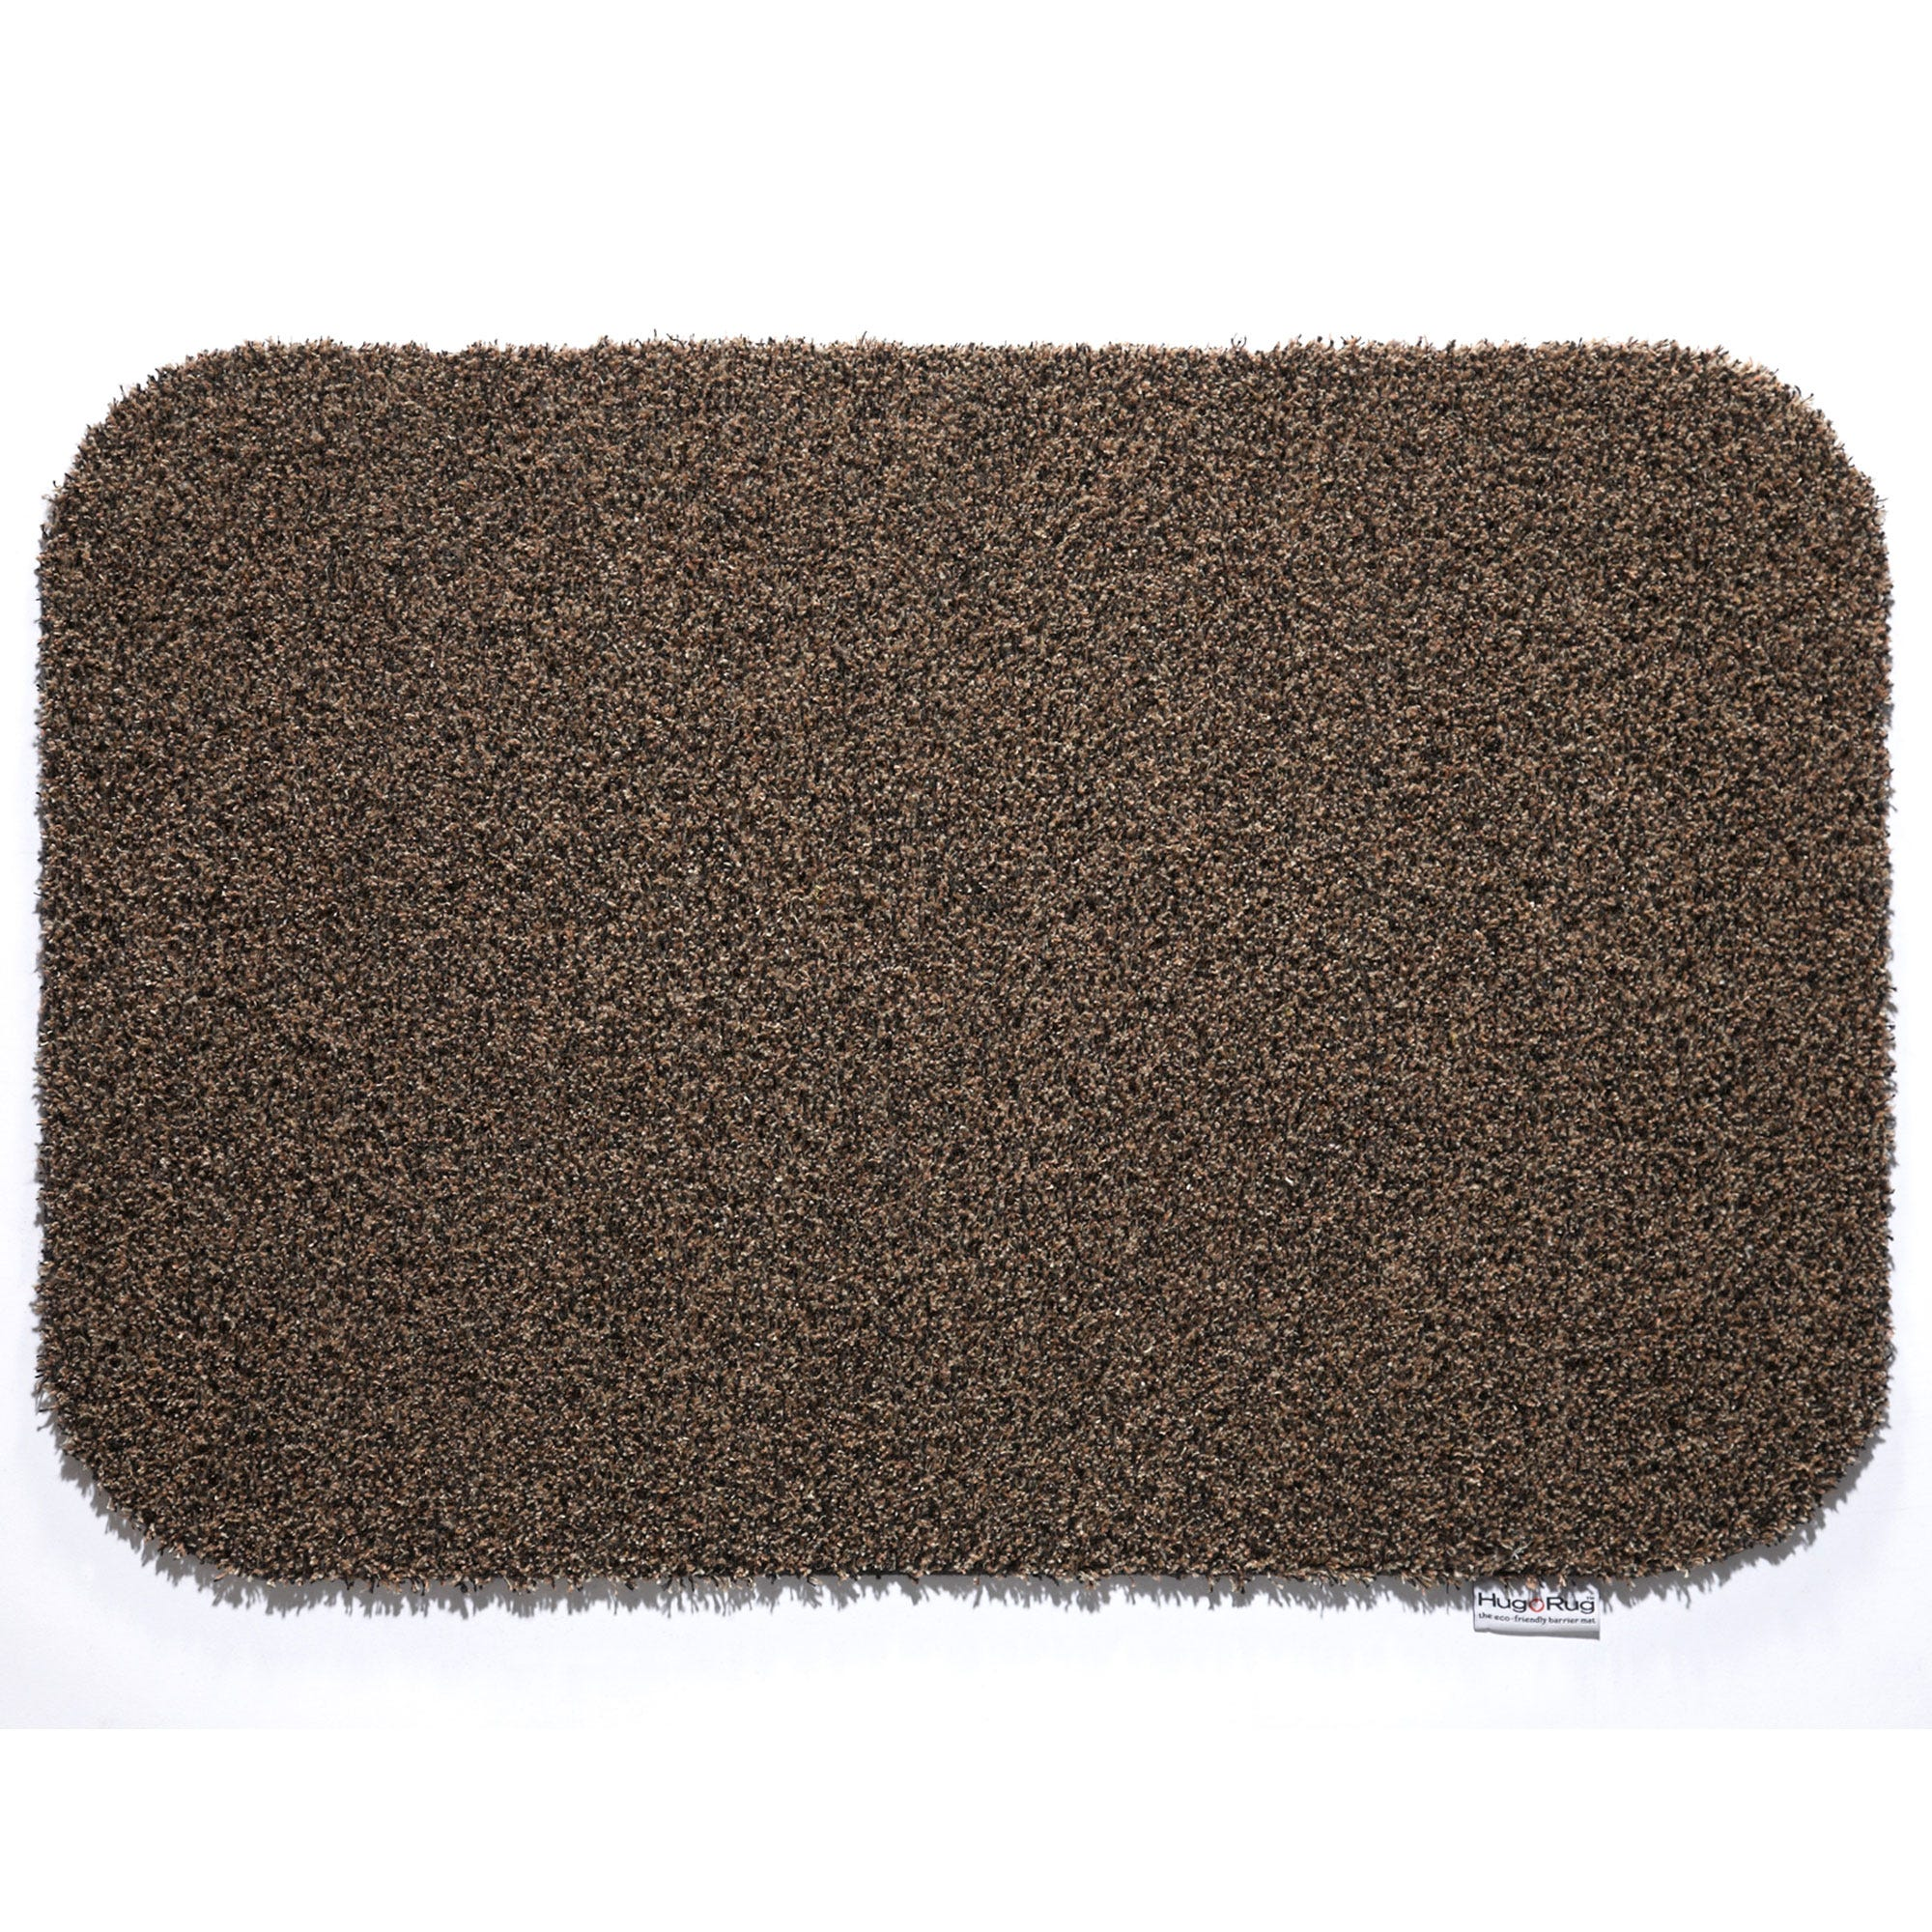 Compare prices for Hug Rug 50 x 75cm Doormat - Coffee